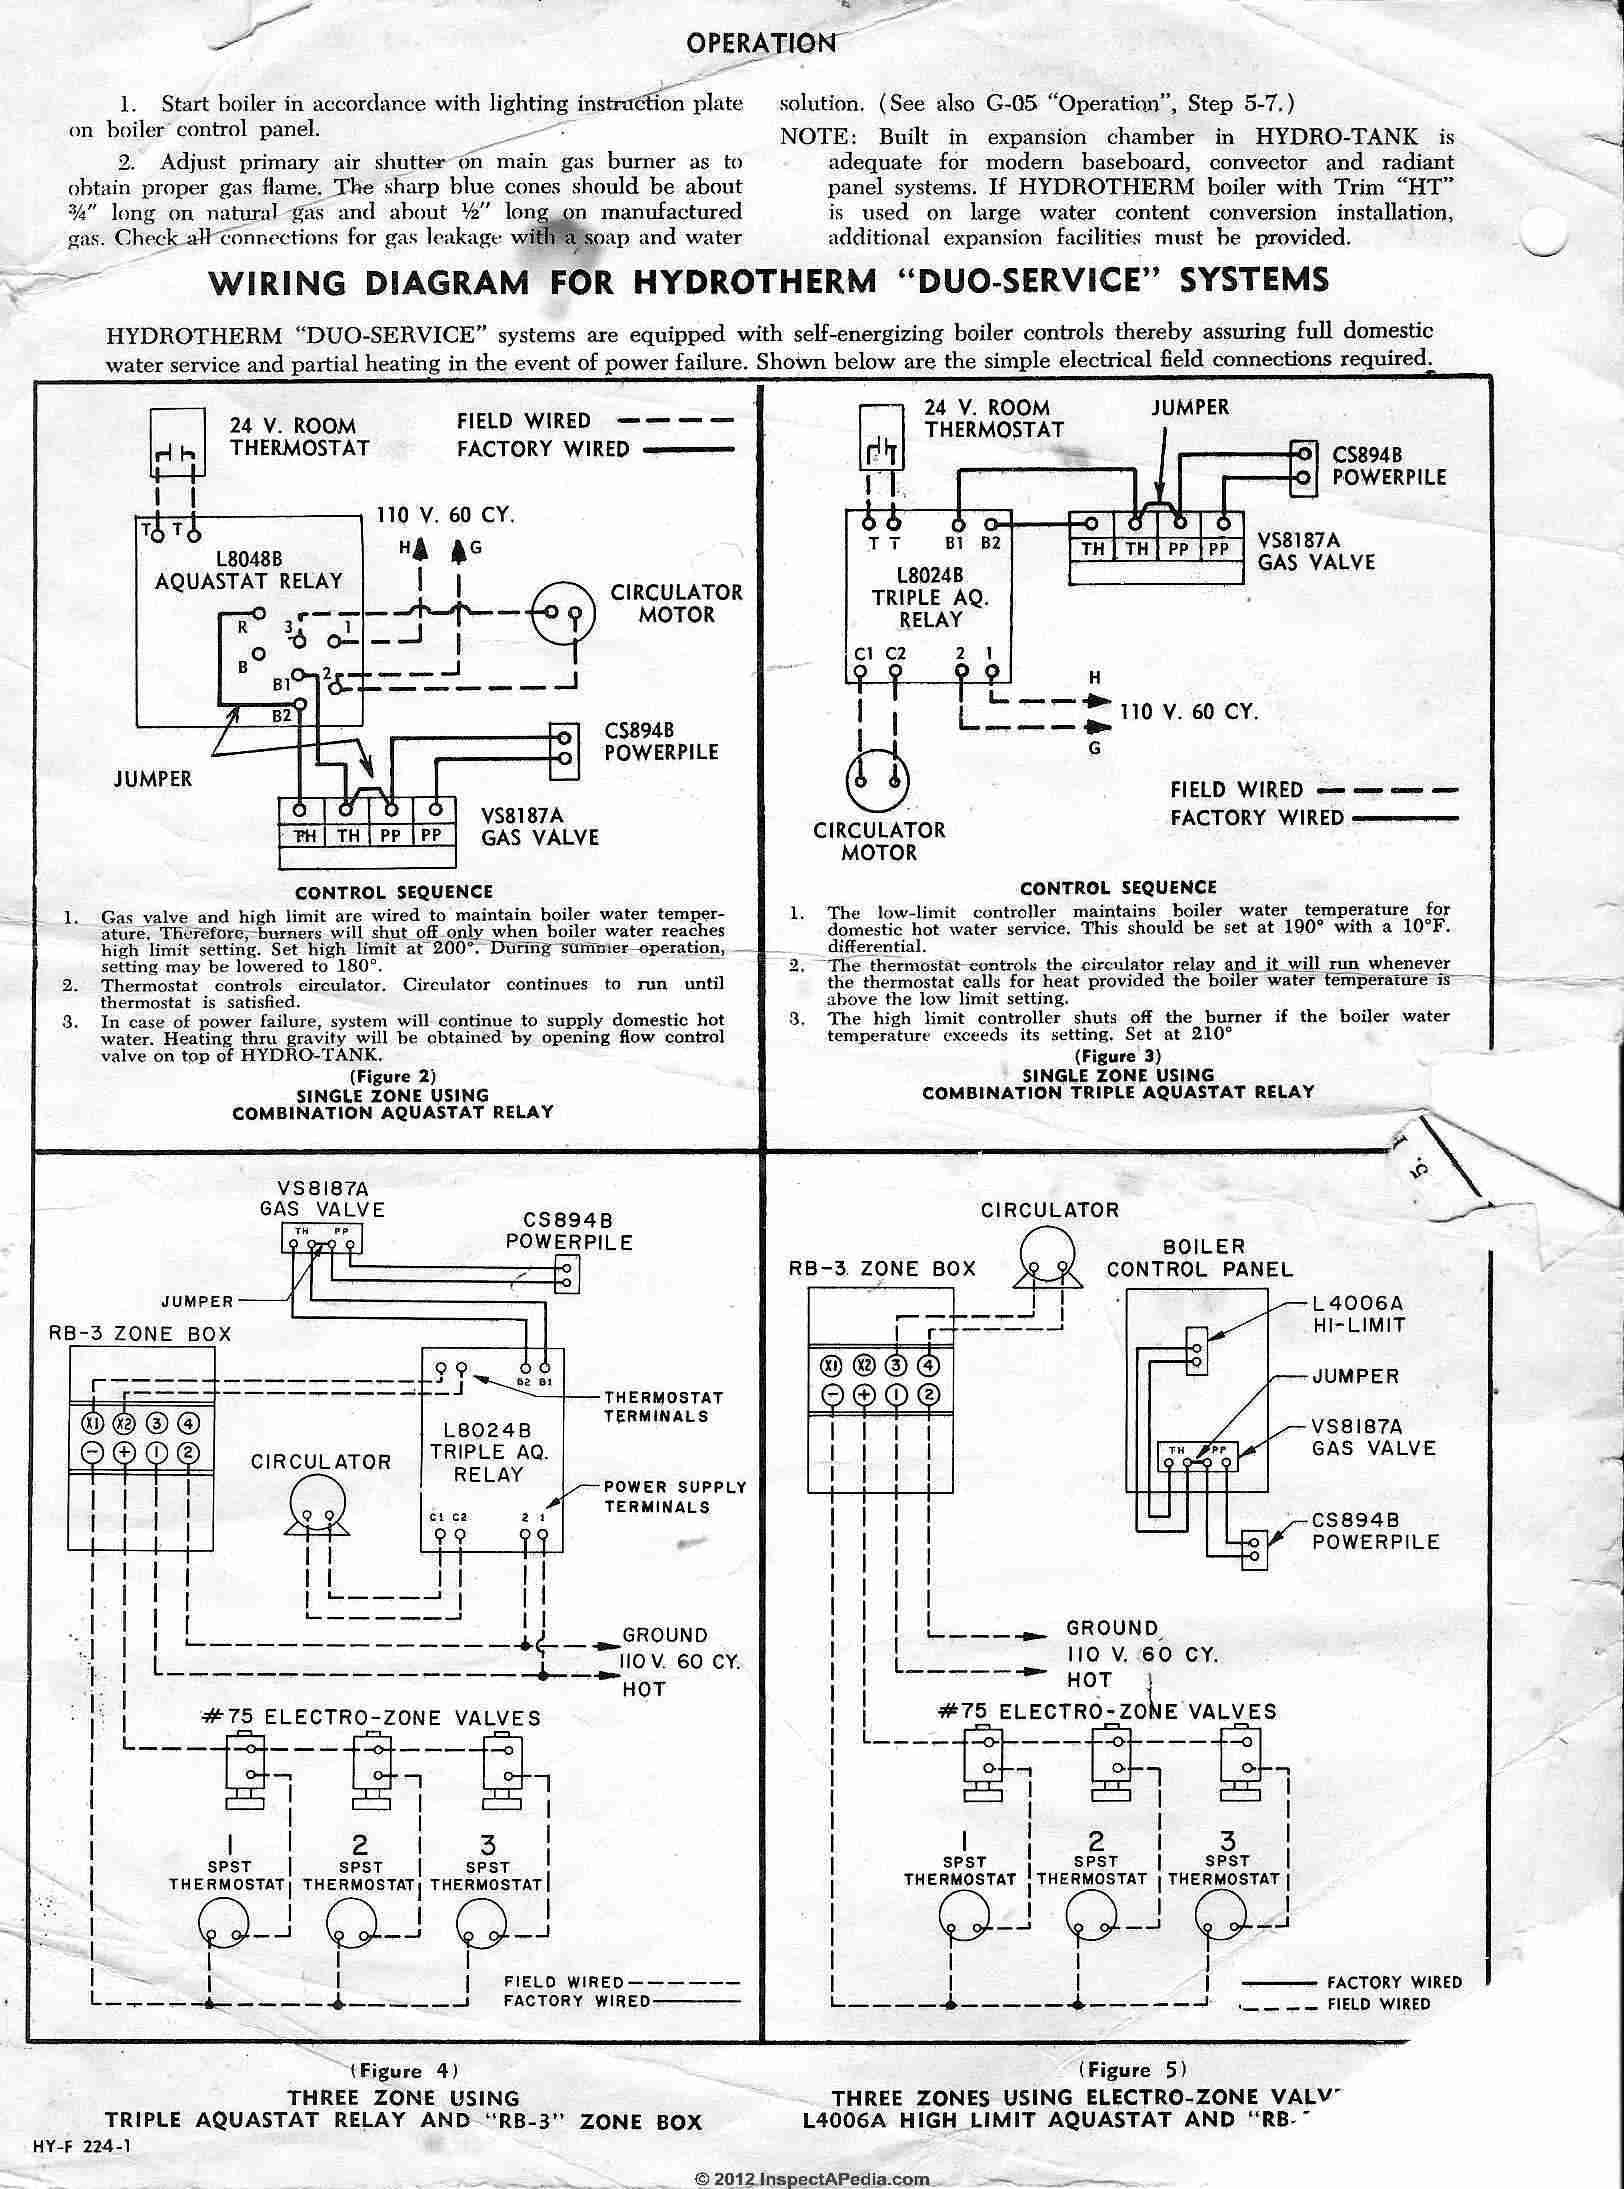 L8024B_Aquastat_0422_DJFcs heating boiler aquastat control diagnosis, troubleshooting, repair amtrol boilermate wiring diagram at edmiracle.co